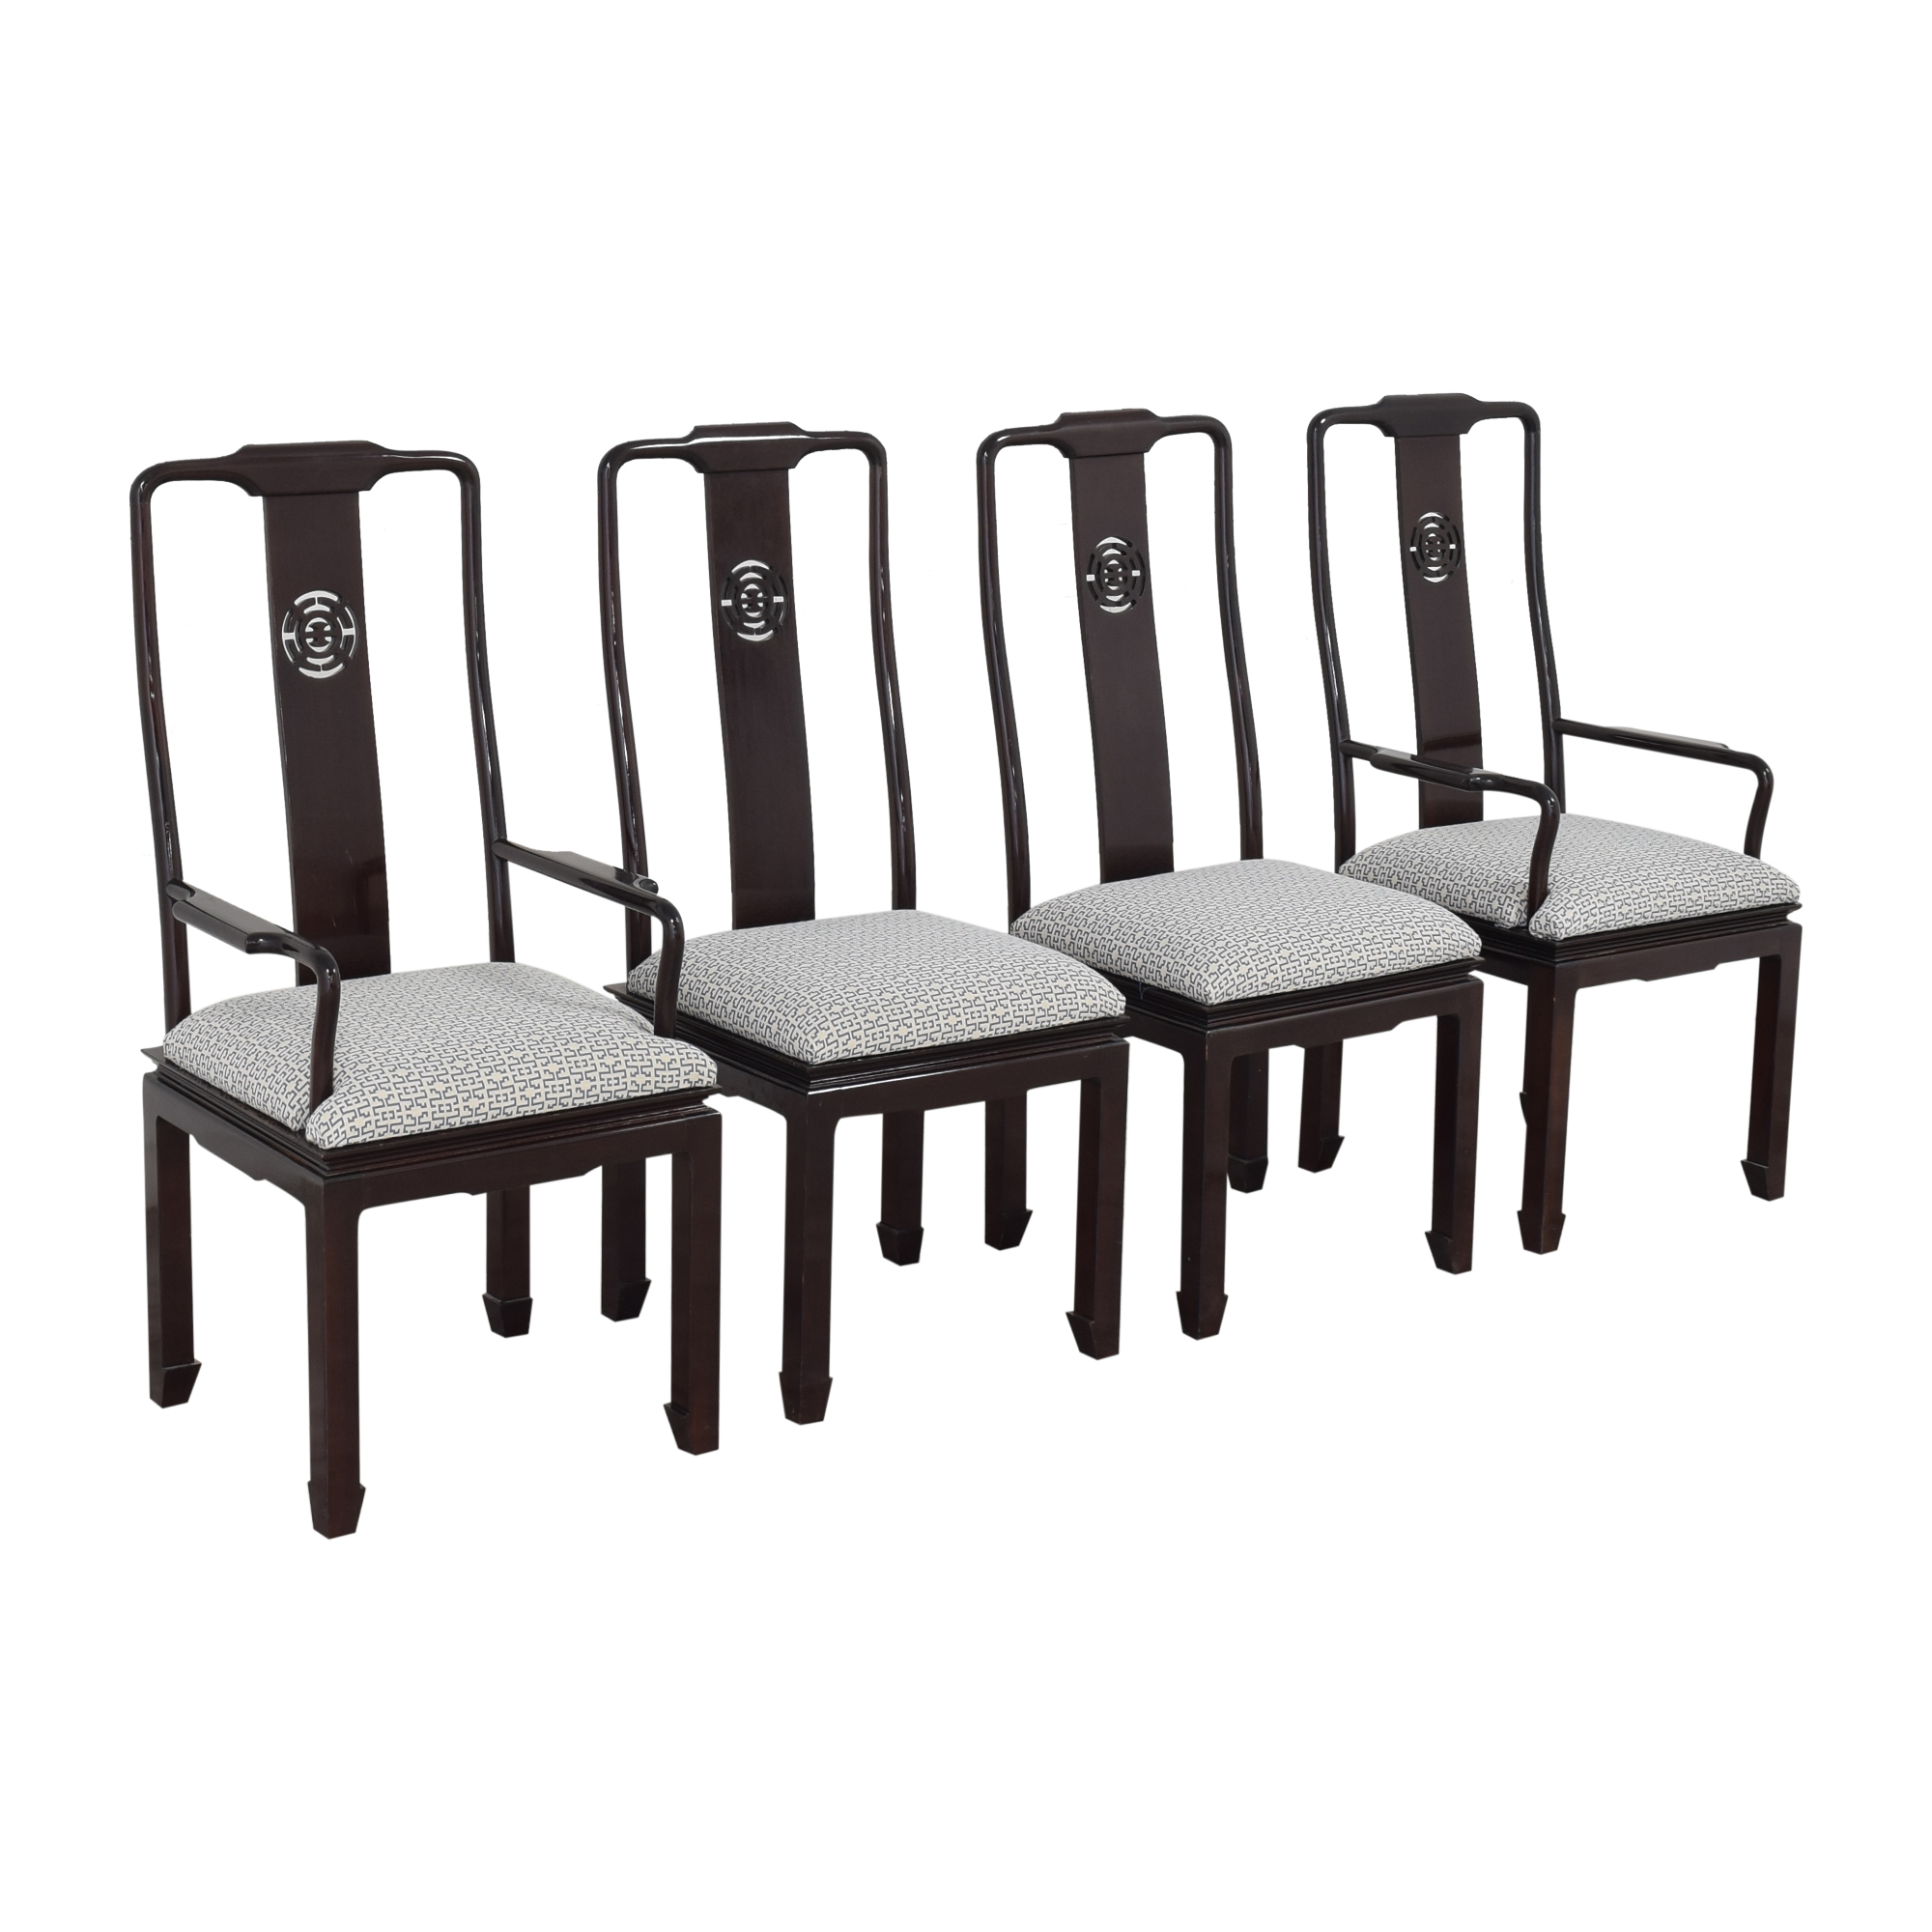 Chinoiserie Dining Chairs coupon